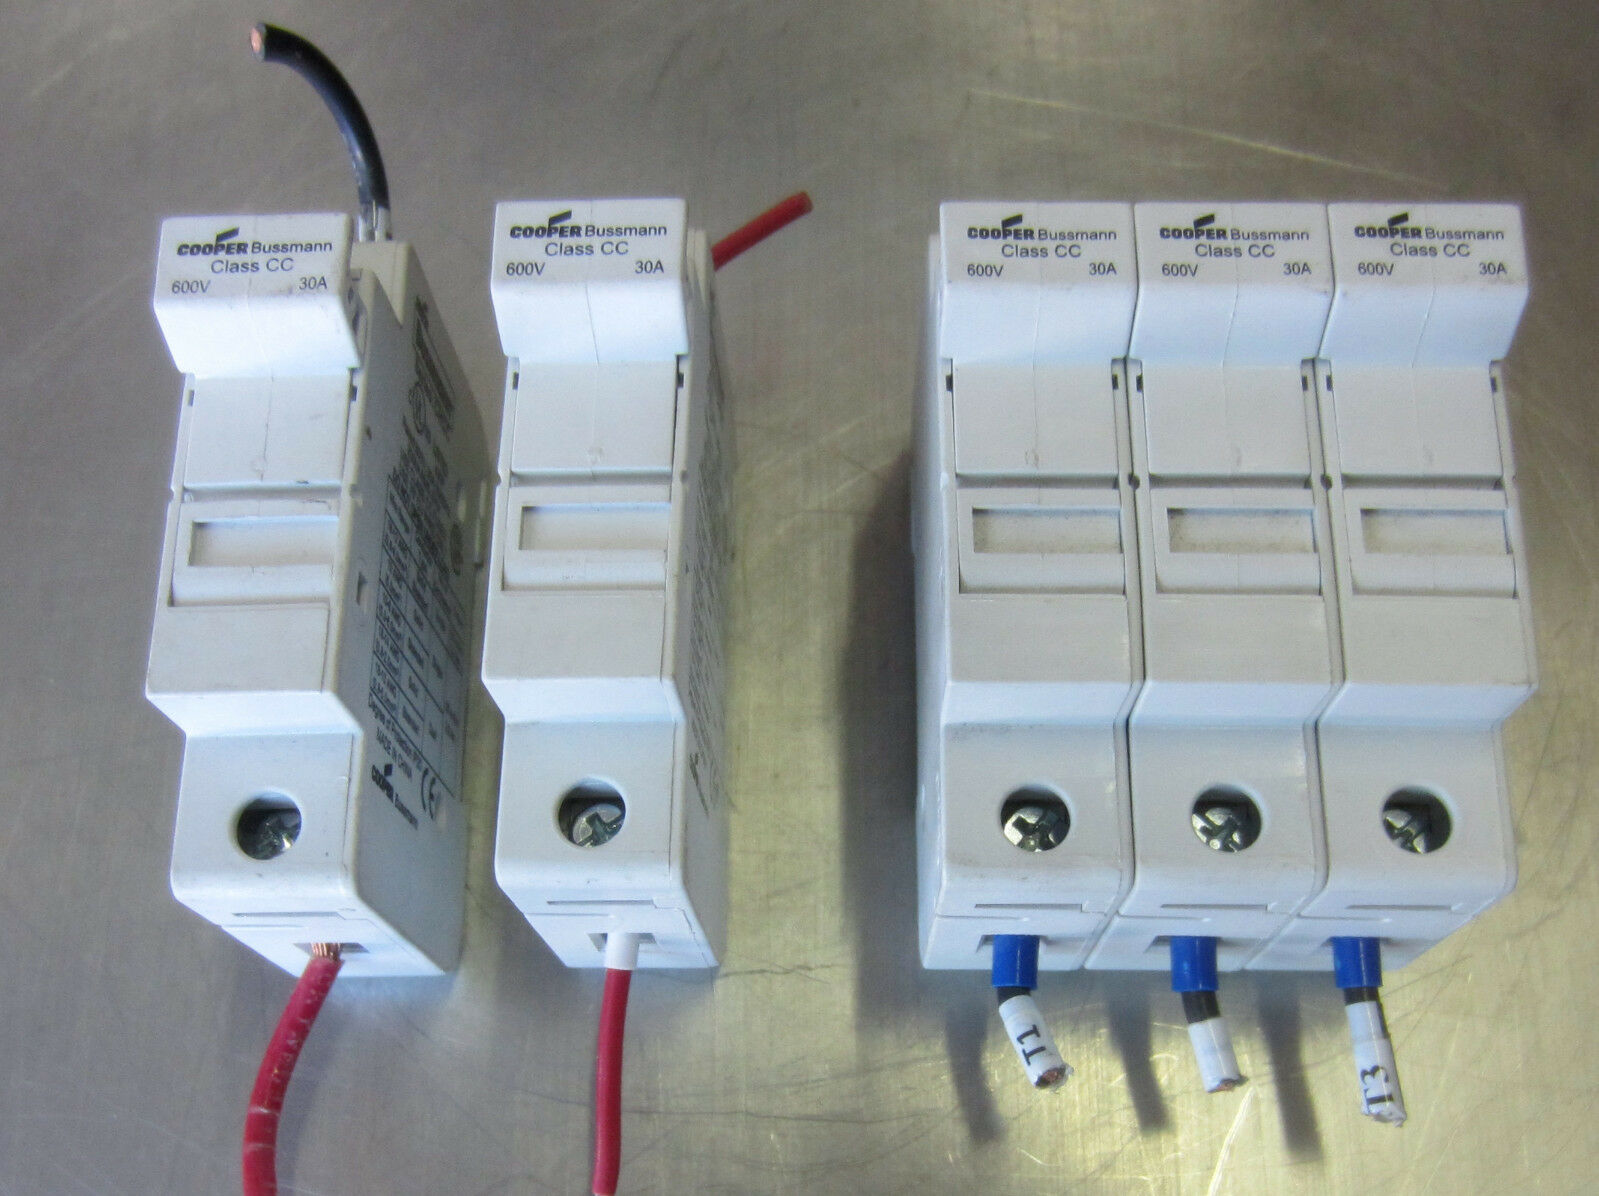 Cooper Bussmann Fuse Holder Chcc 30a 30 Amp 600v Used Mixed Lot Of 3 Buss Box 1 12only Available